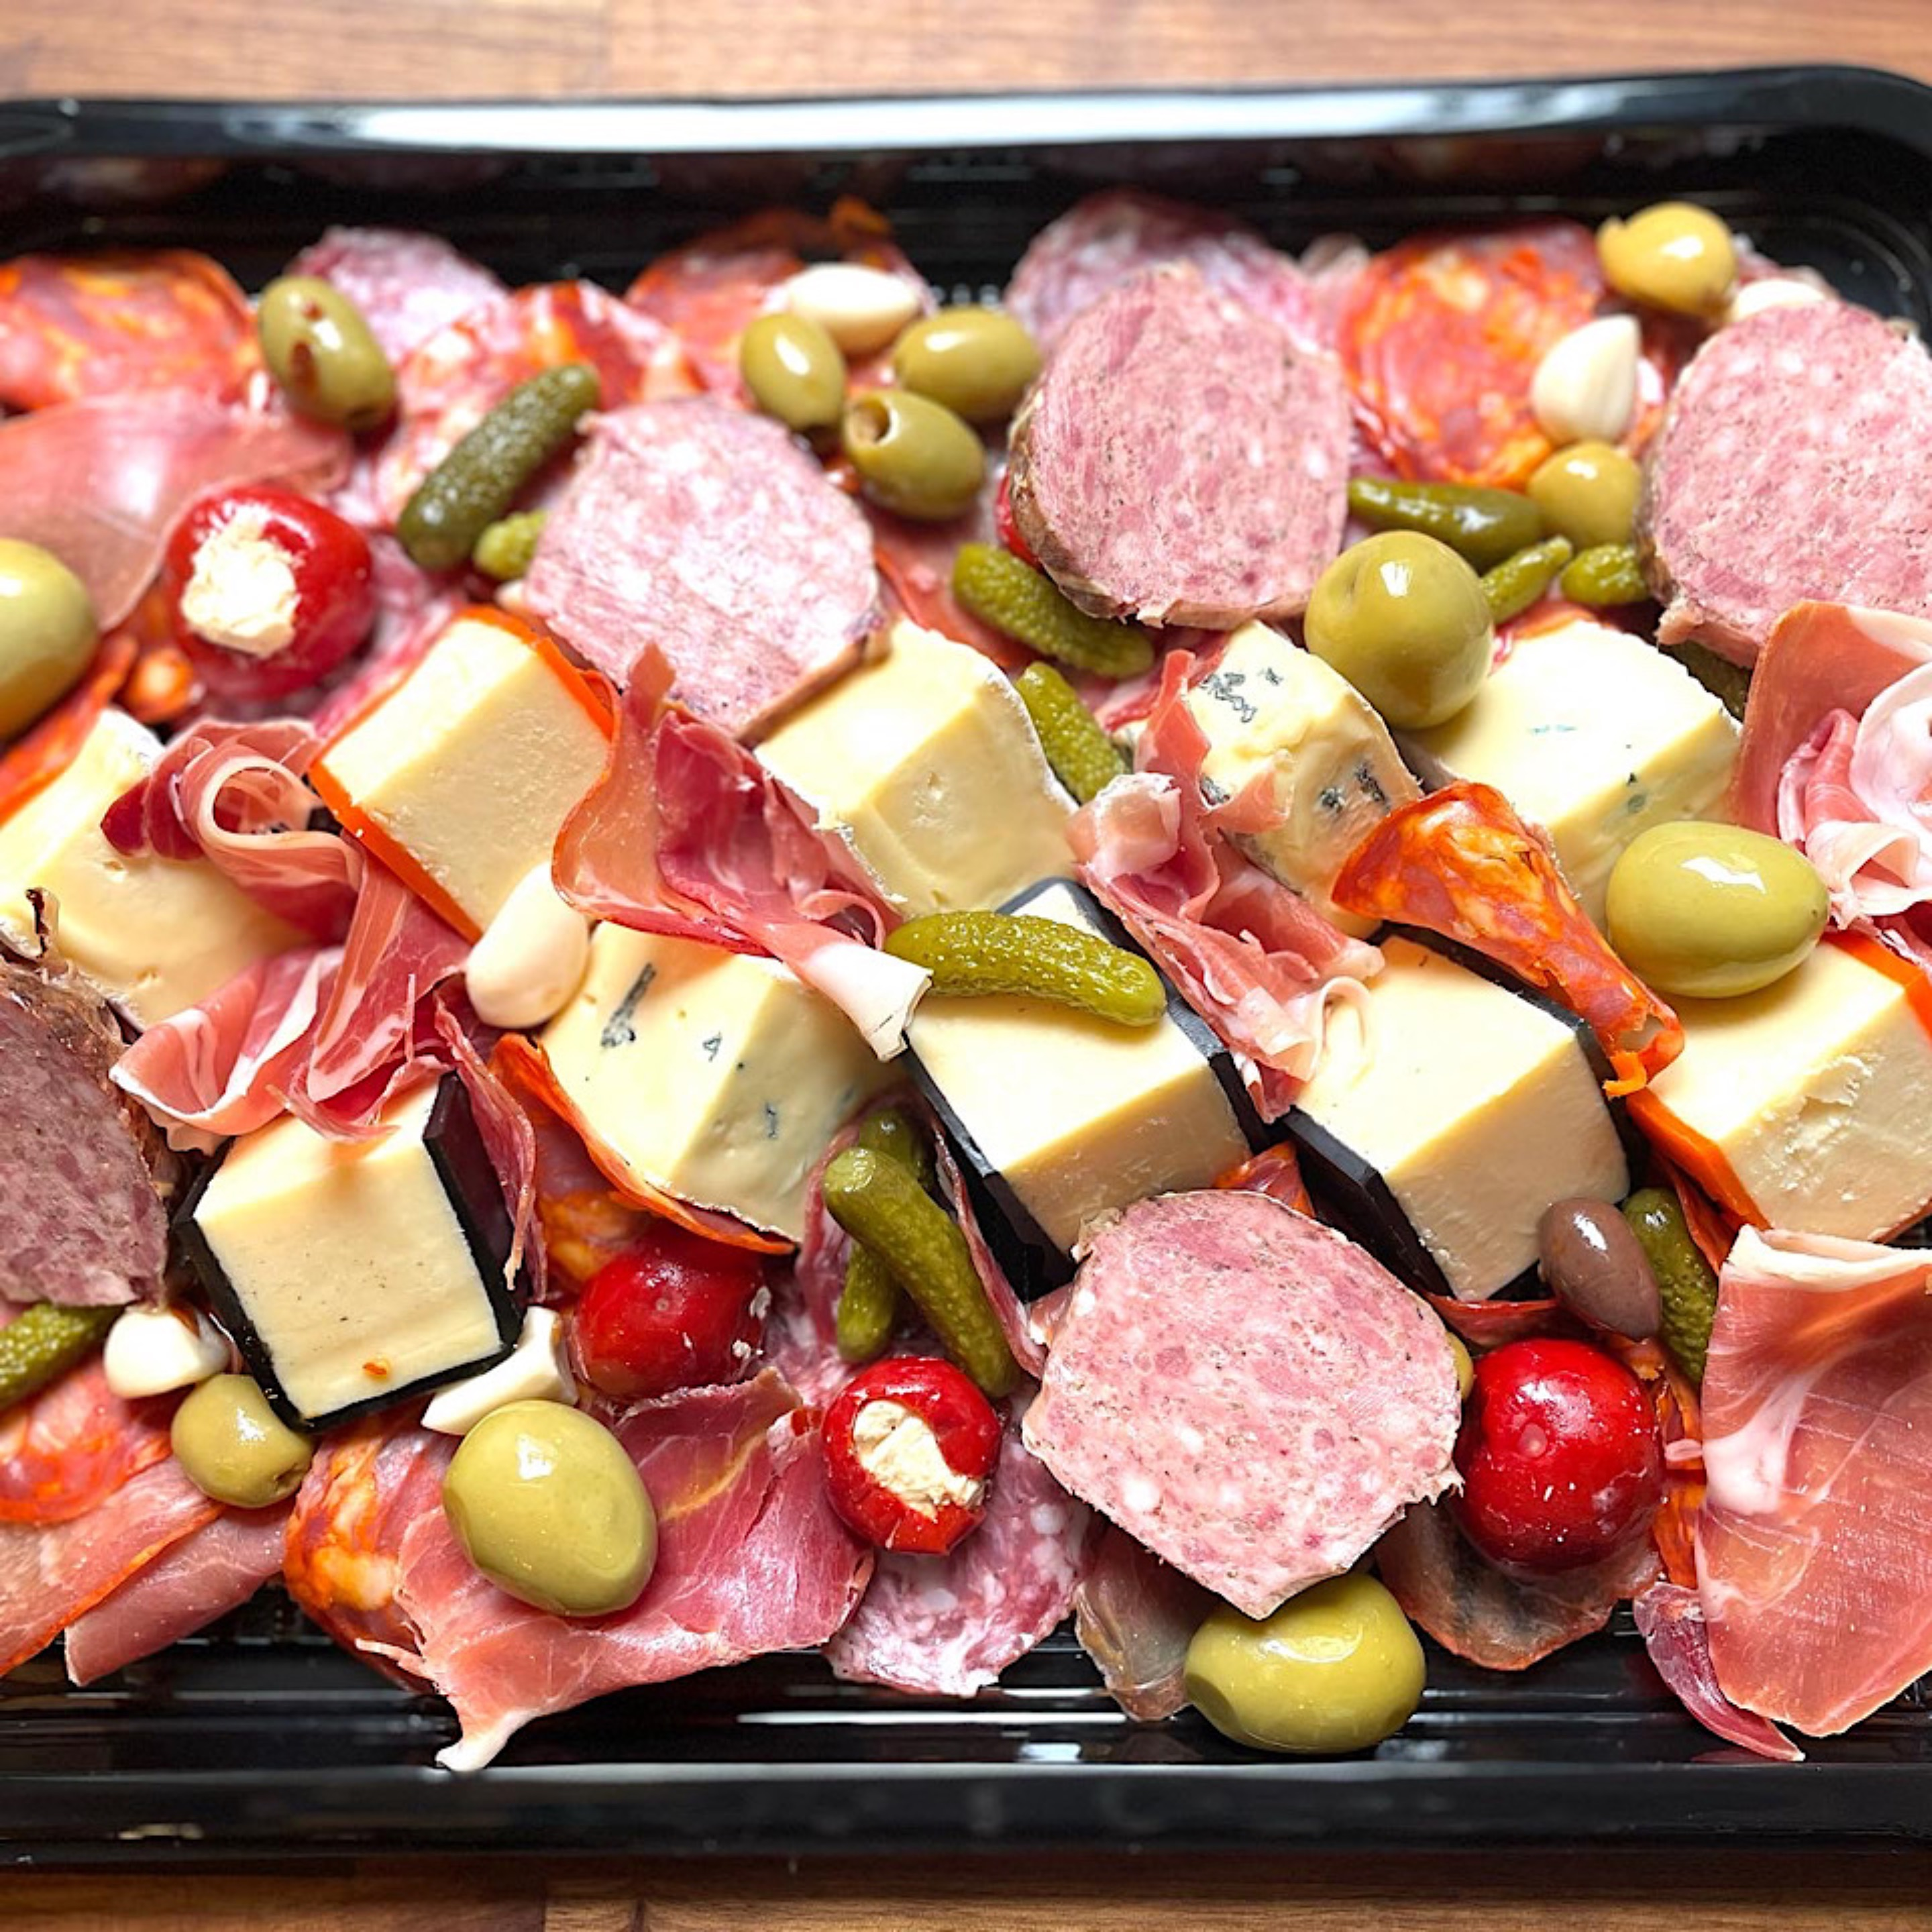 Deli Meat & Cheese Platter